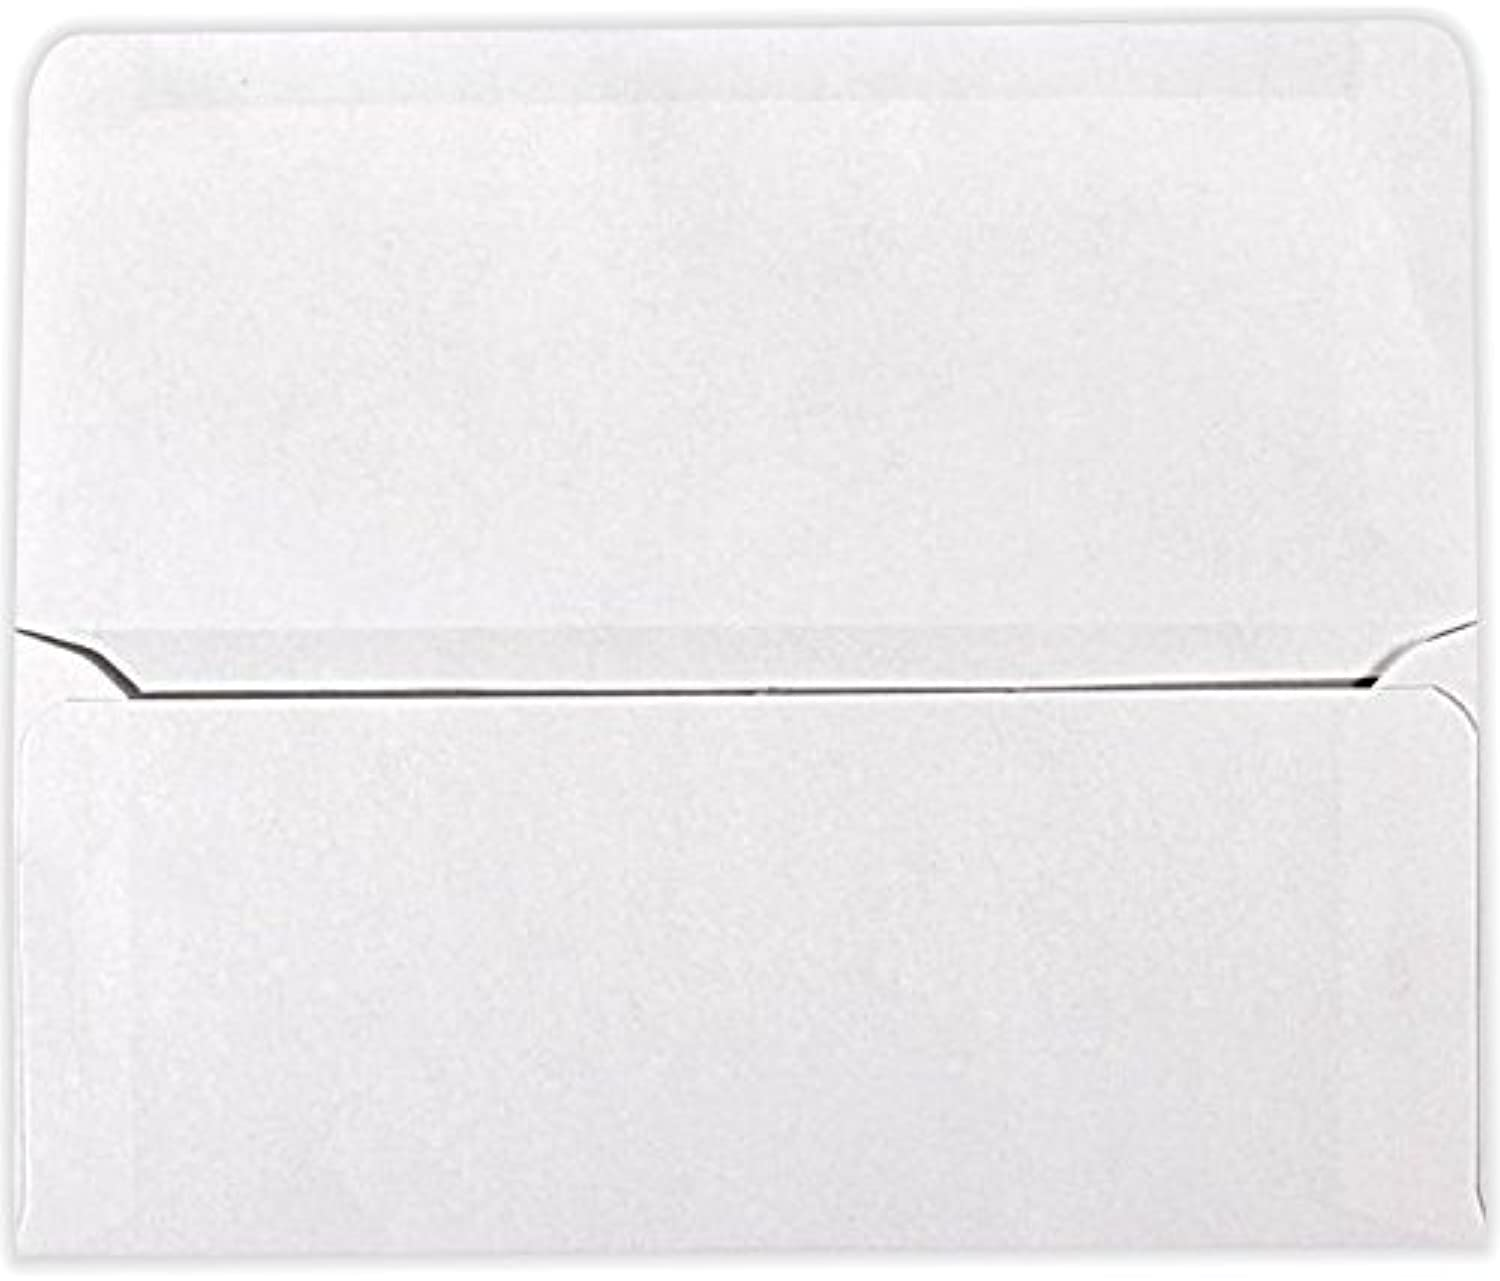 9 Remittance Envelopes (3 7 8 x 8 7 8 Closed) - 24 lb. Bright Weiß (50 Qty.) by Envelopes  B016LBX526 | Online Outlet Store